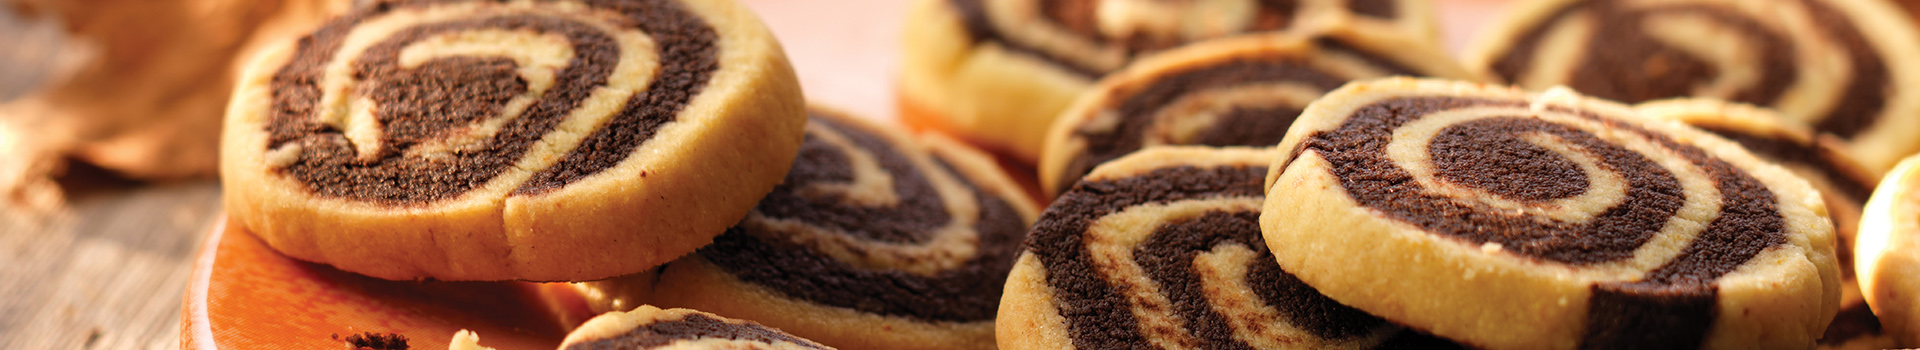 Orange And Chocolate Whirls